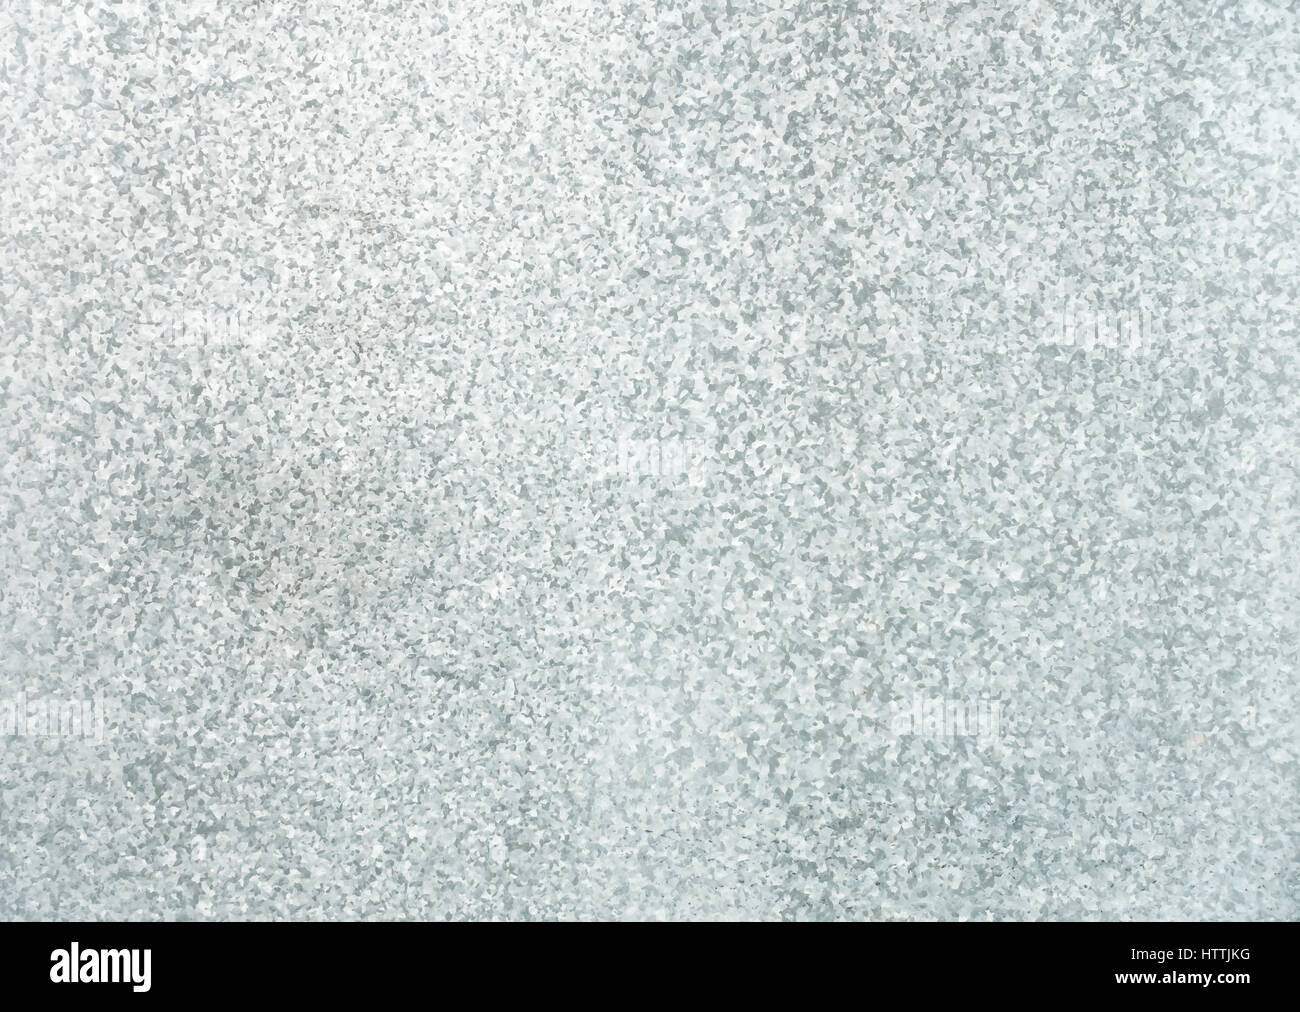 Galvanized steel sheet background in three shades of gray. - Stock Image